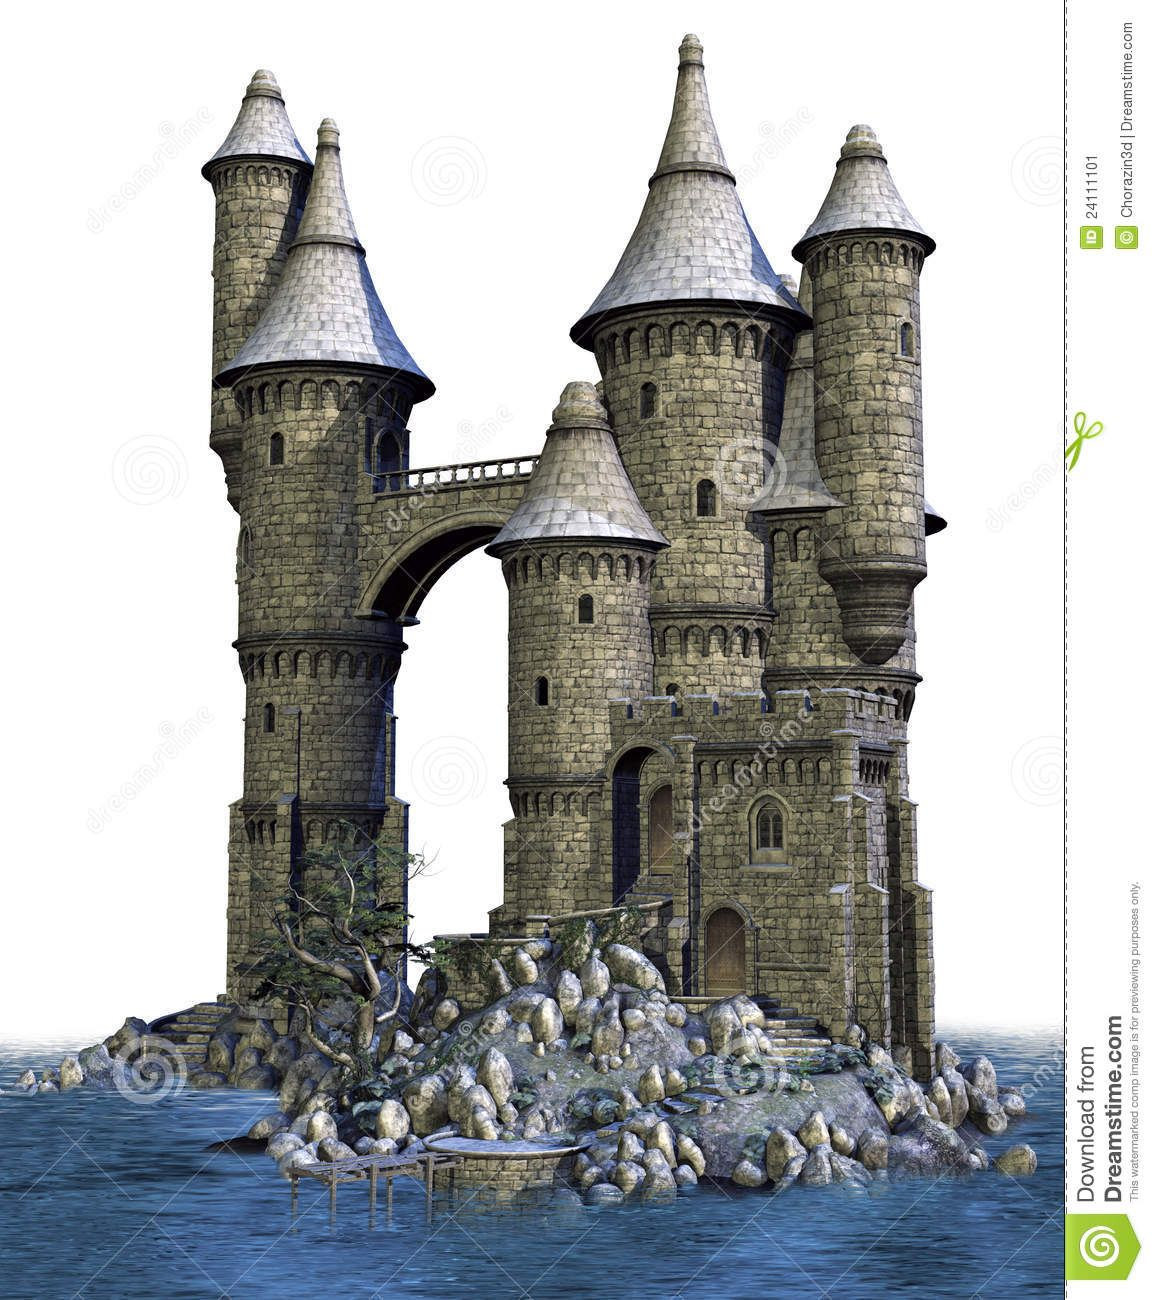 Fantasy castle on an island architecture castles for Castle architecture design